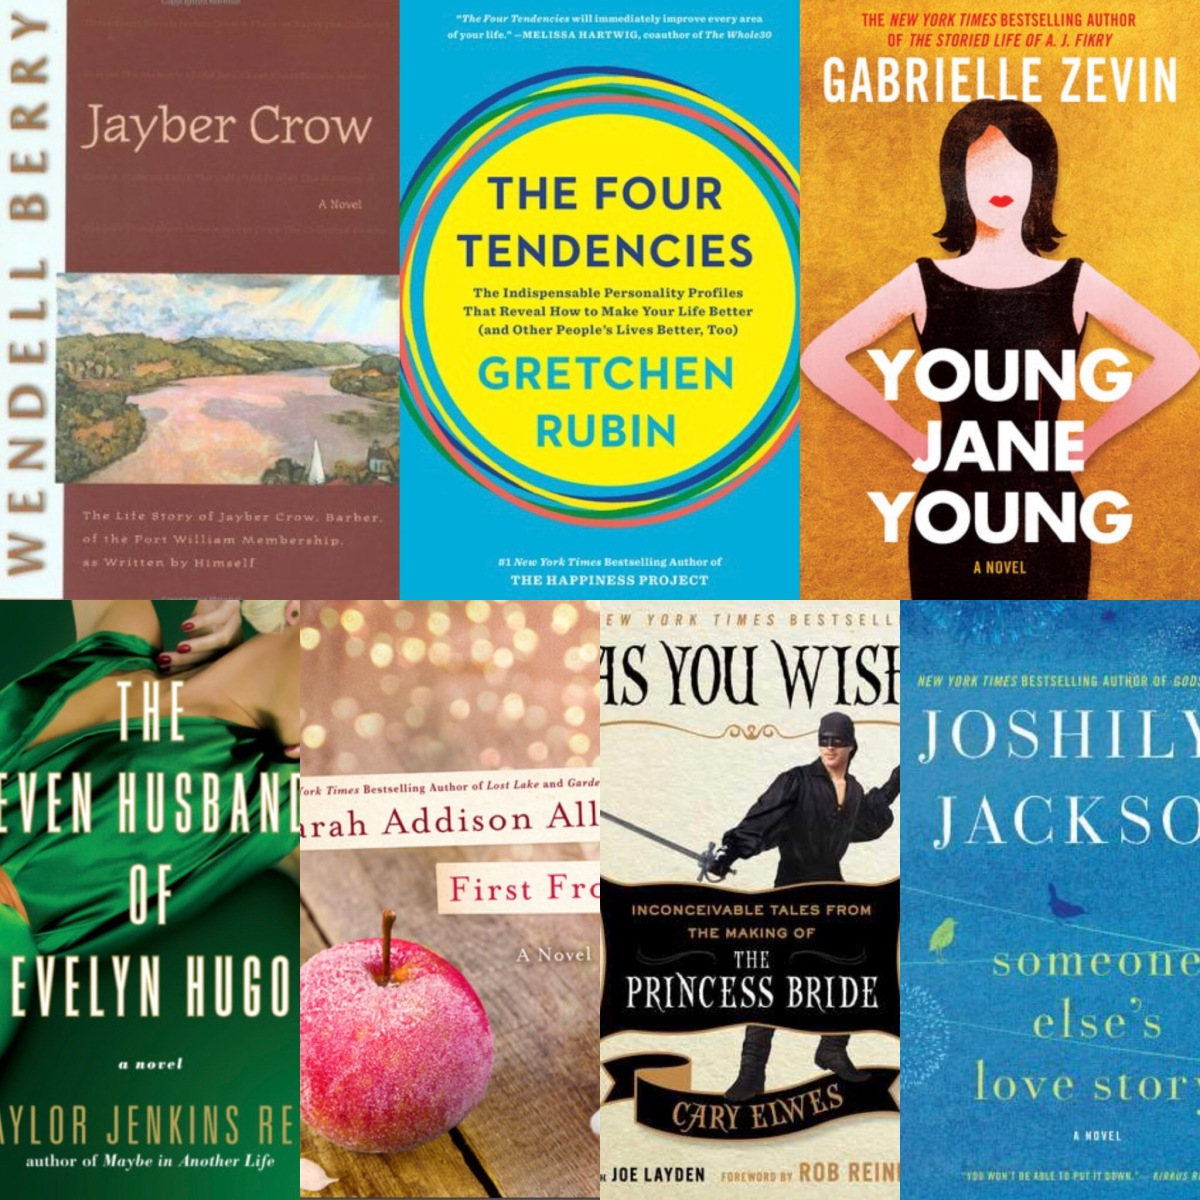 October Book Reviews: Jayber Crow, The Four Tendencies, Young Jane Young, The Seven Husbands of Evelyn Hugo, First Frost, As You Wish, Someone Else's Love Story